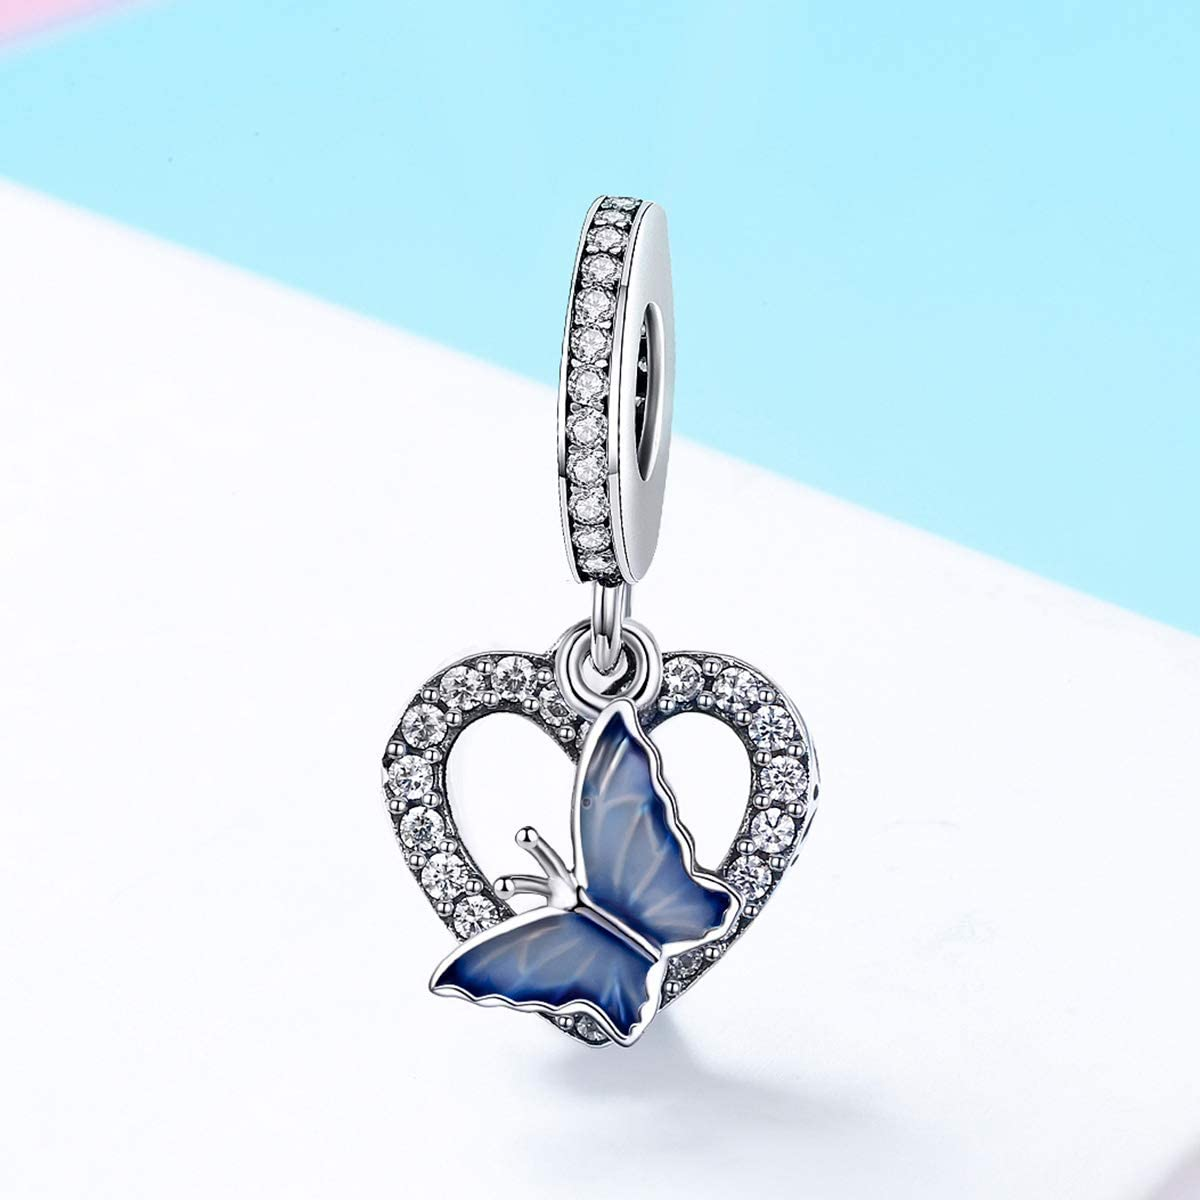 The Kiss Crystal Butterfly with Heart Shape Dangle 925 Sterling Silver Bead Fits European Charm Bracelet